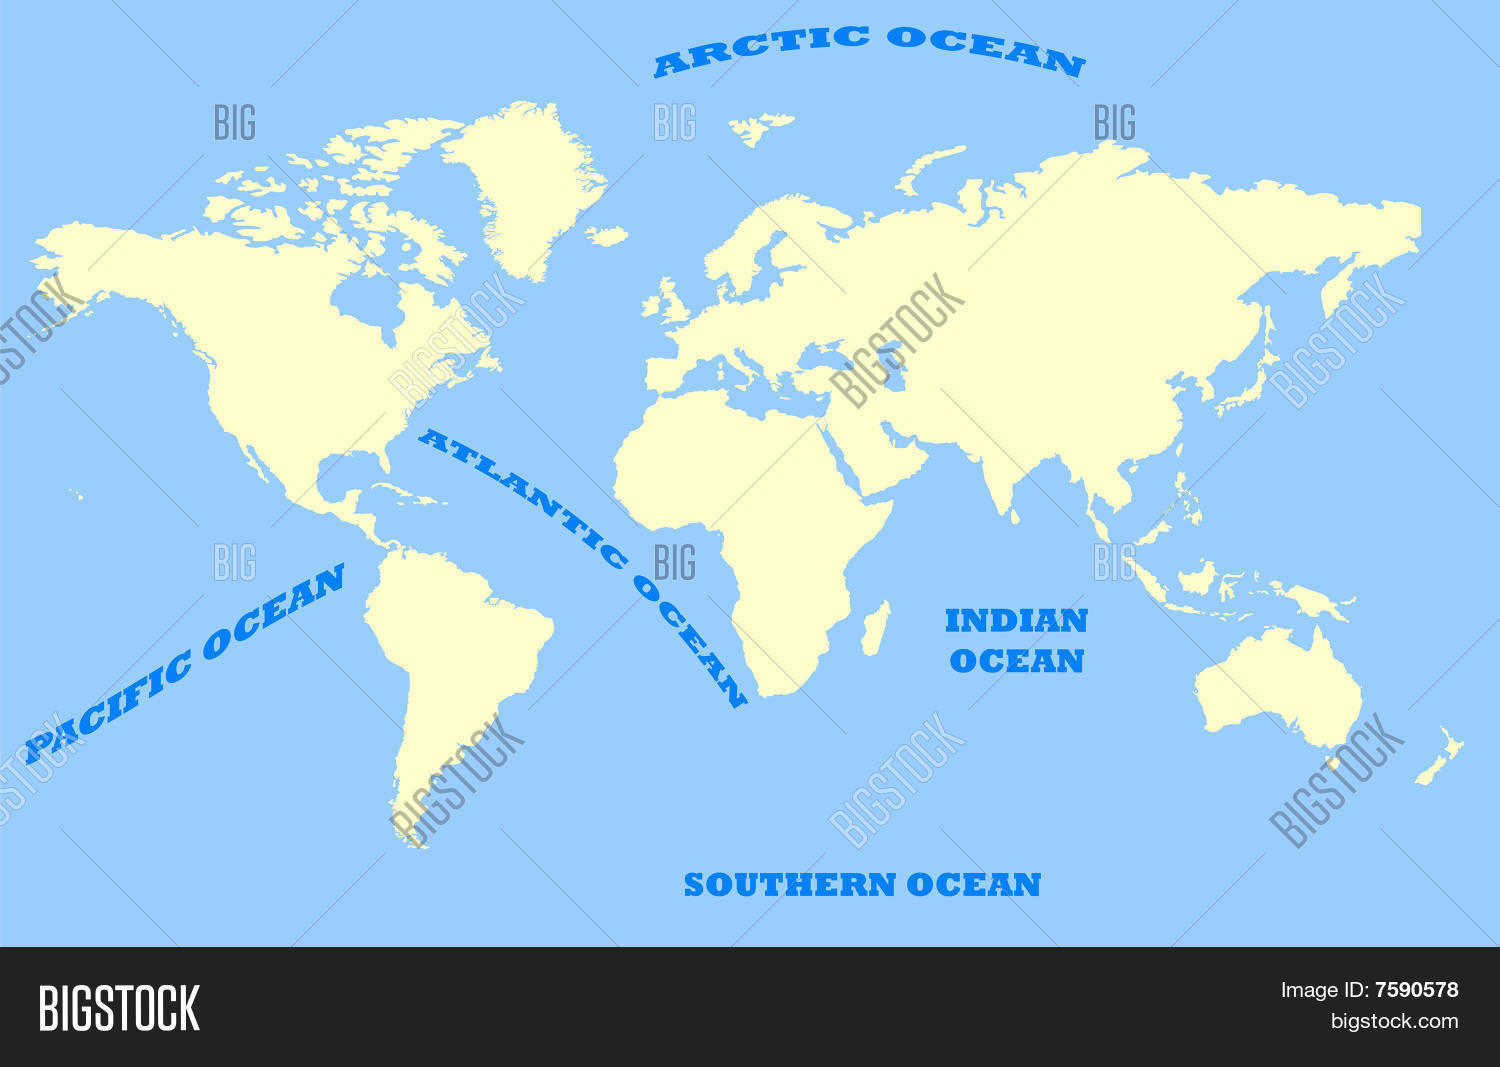 Map Of World And Oceans.Map World Oceans Image Photo Free Trial Bigstock